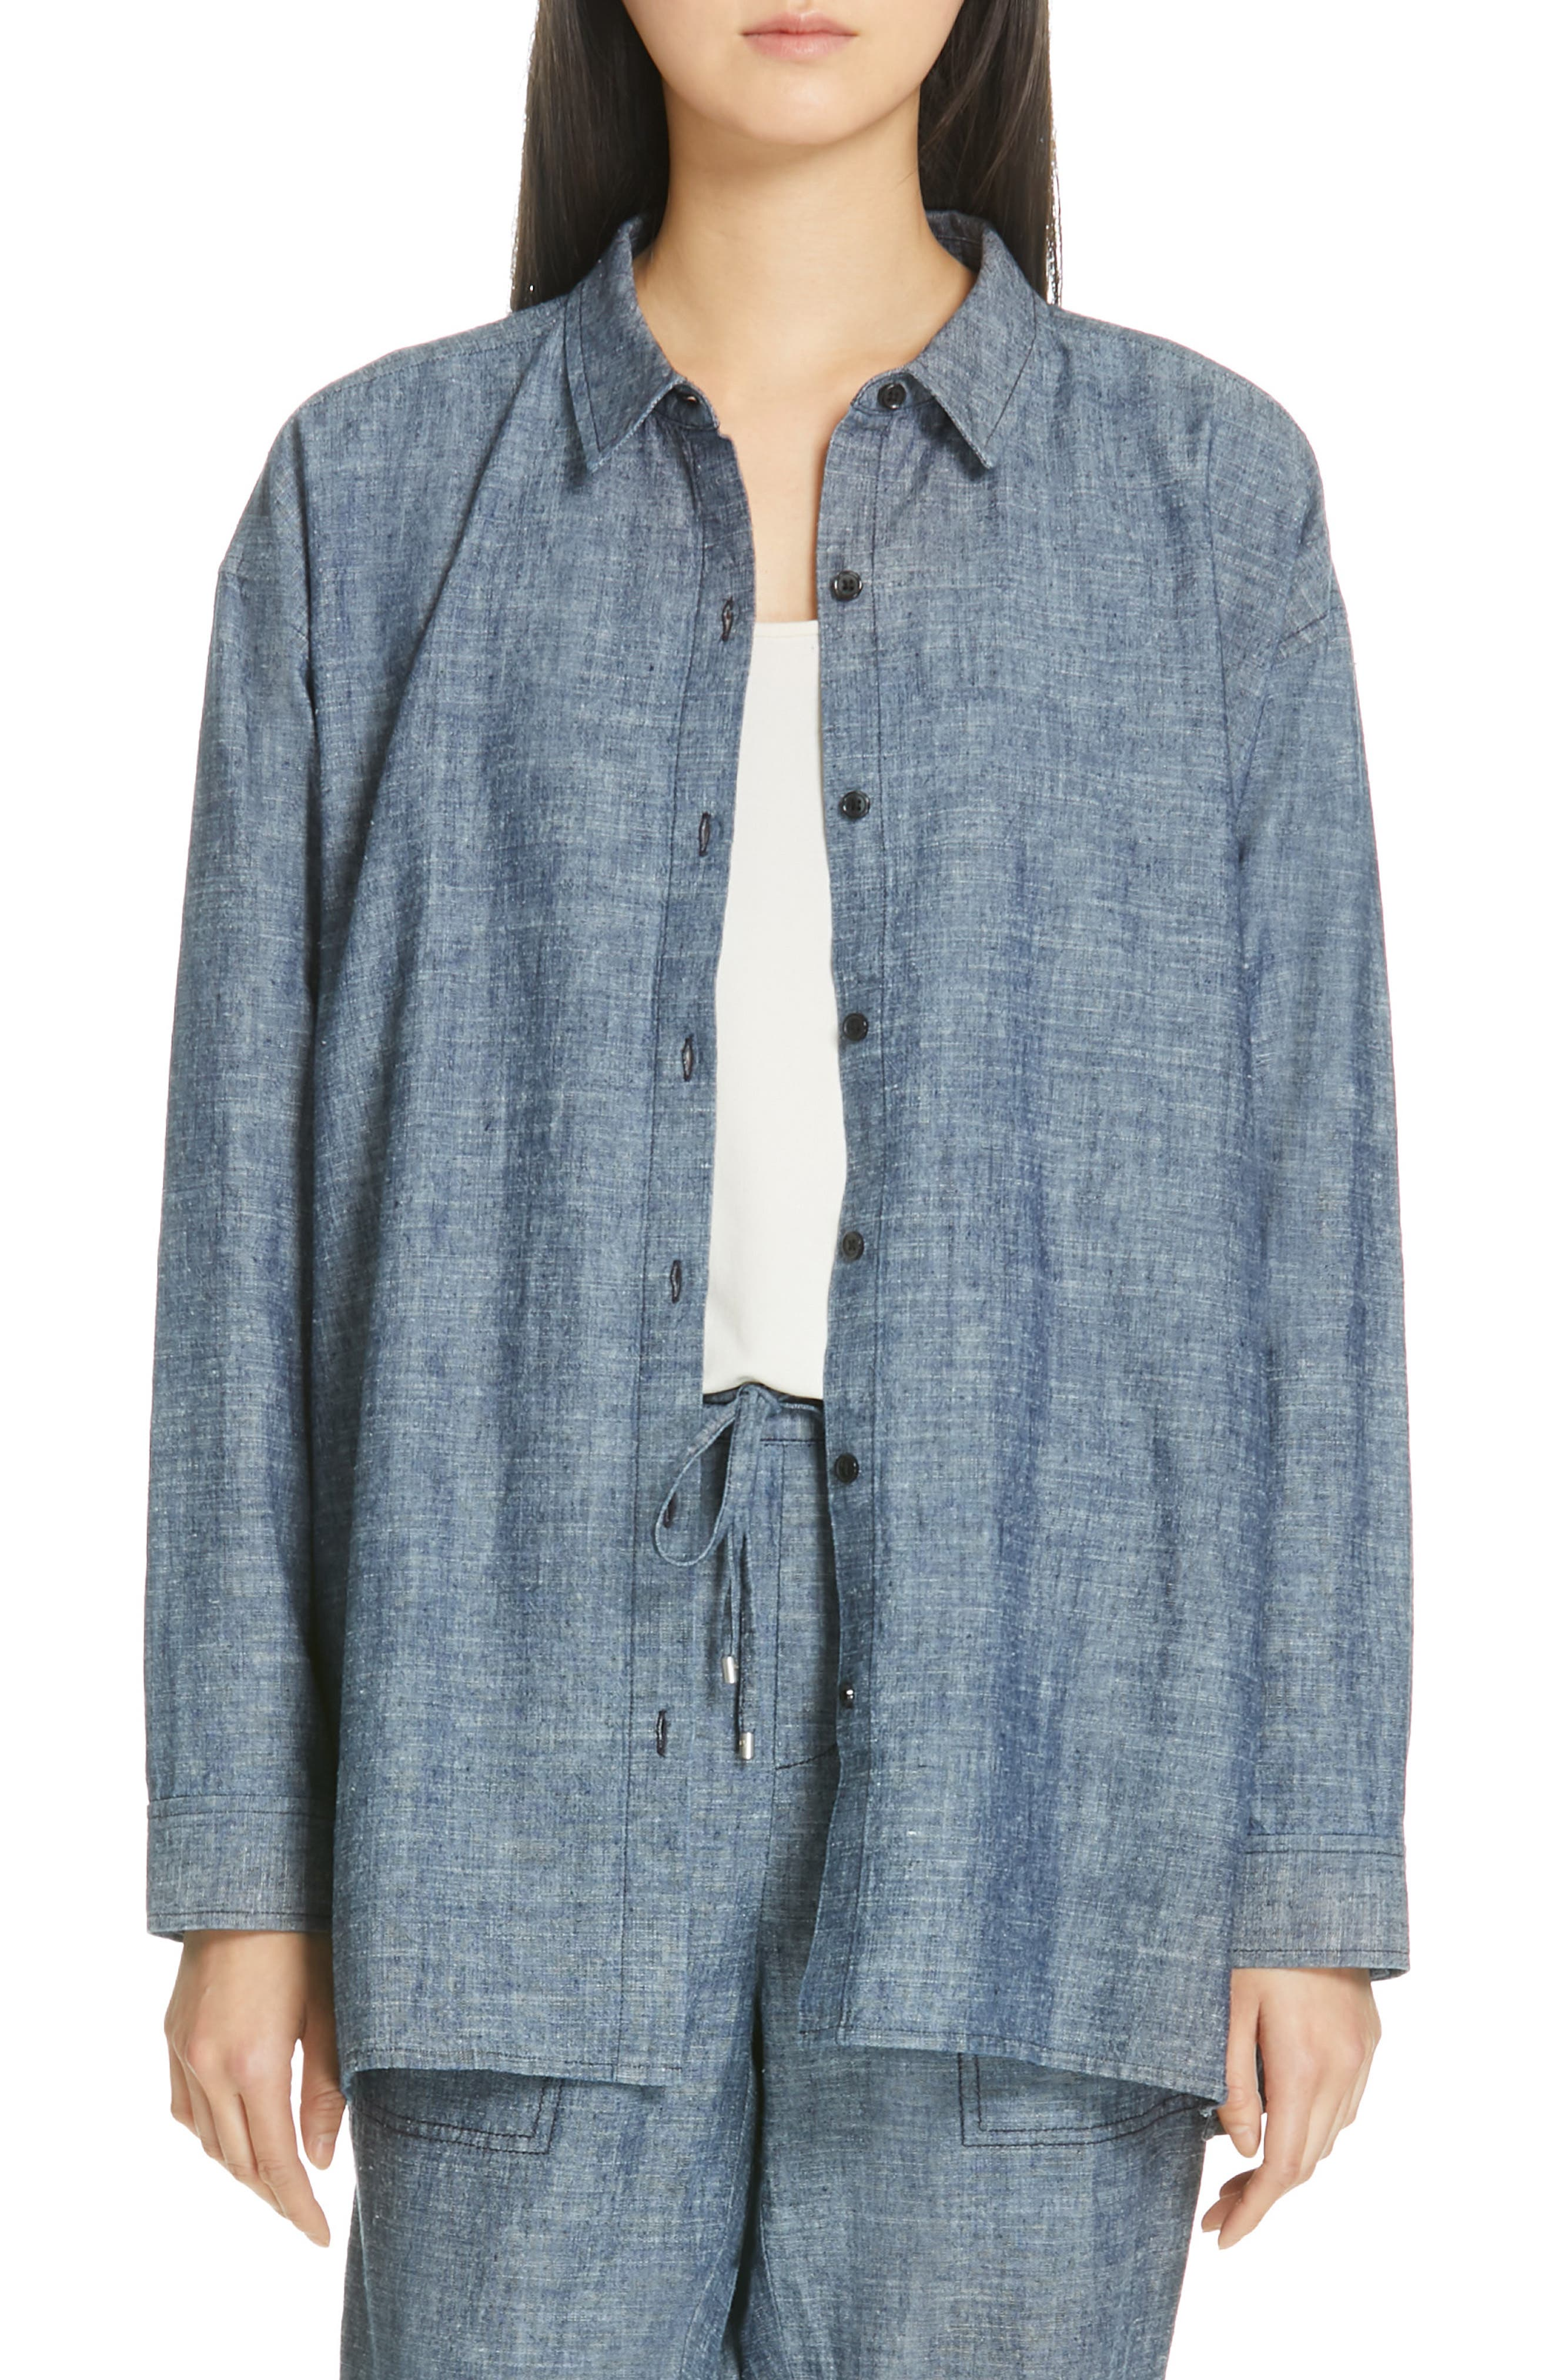 EILEEN FISHER Woven Top, Main, color, DENIM